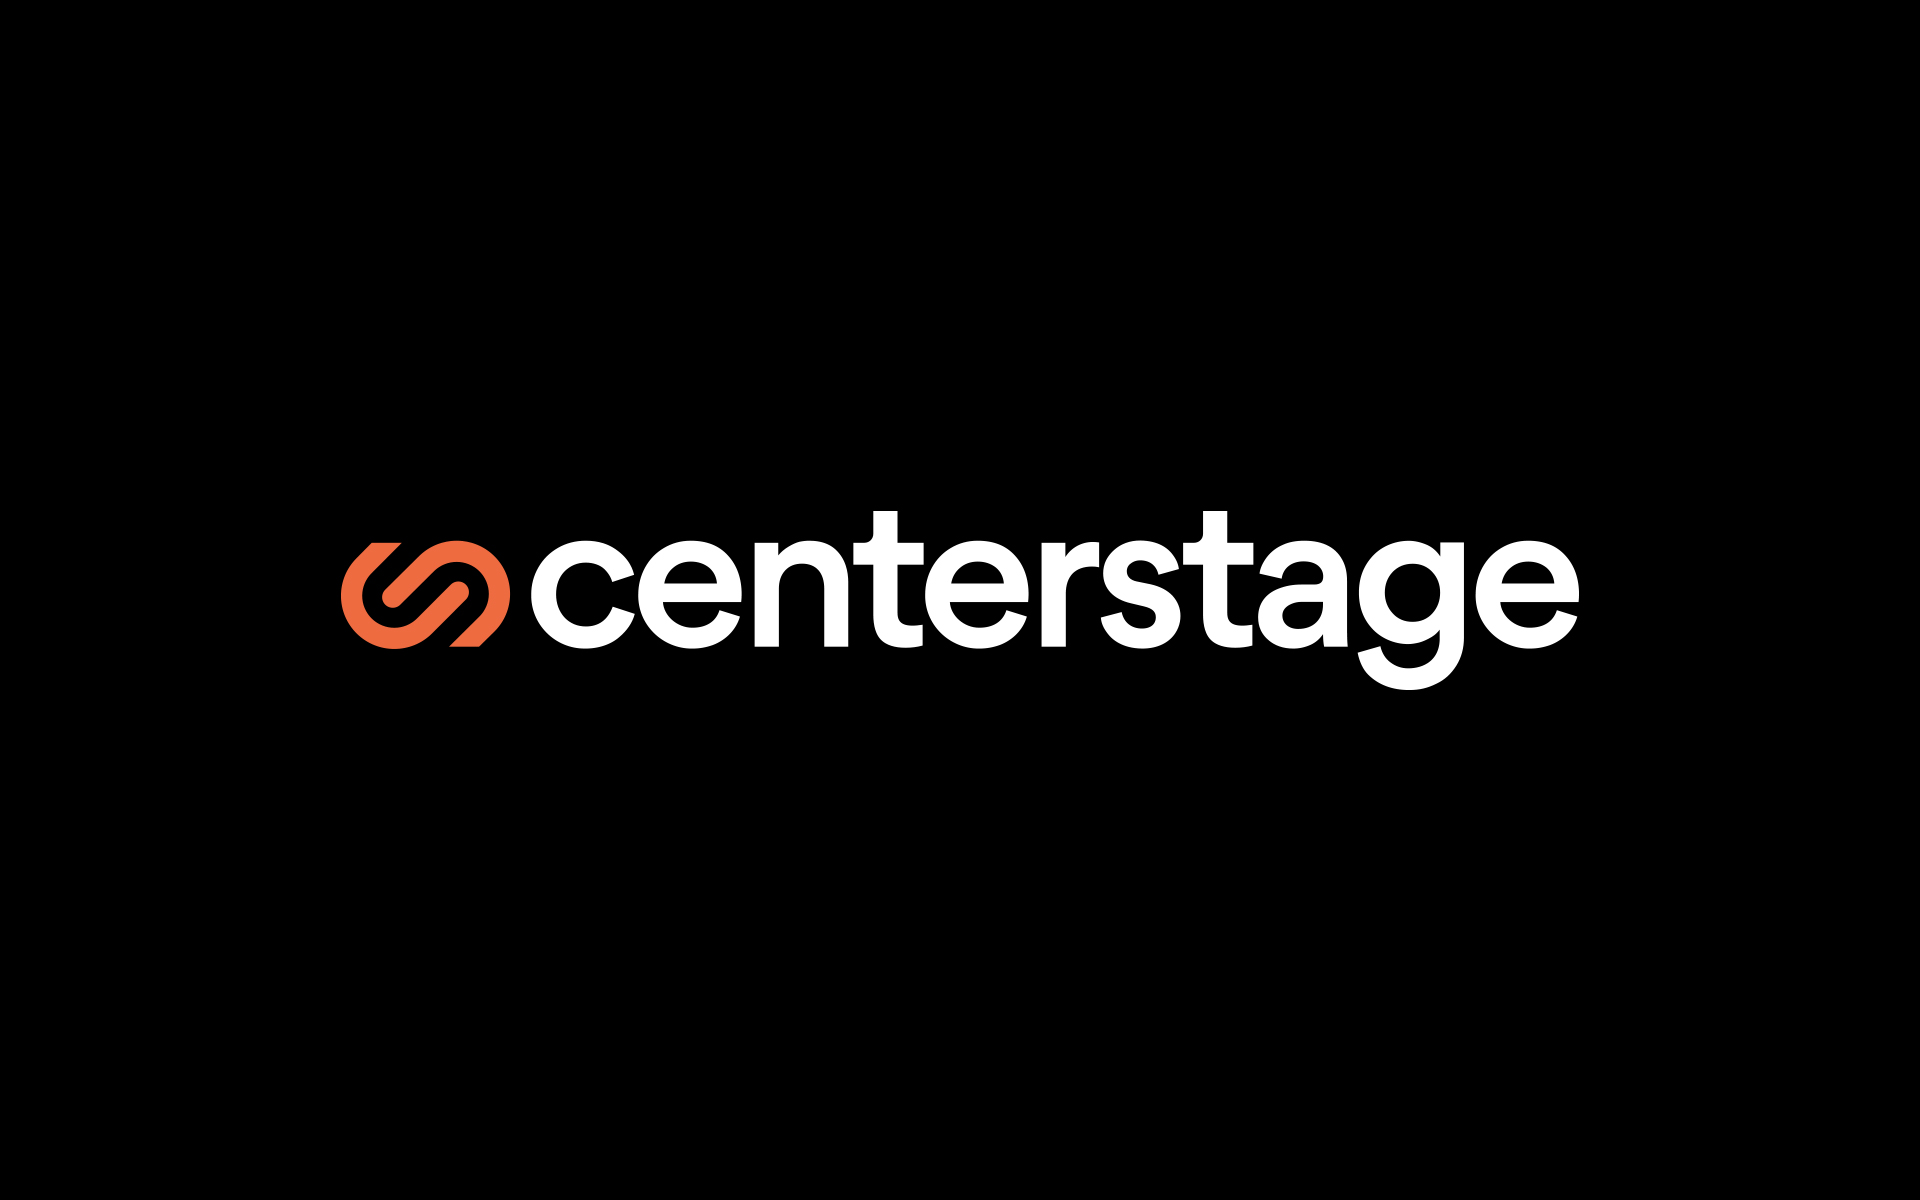 Centerstage logo on black